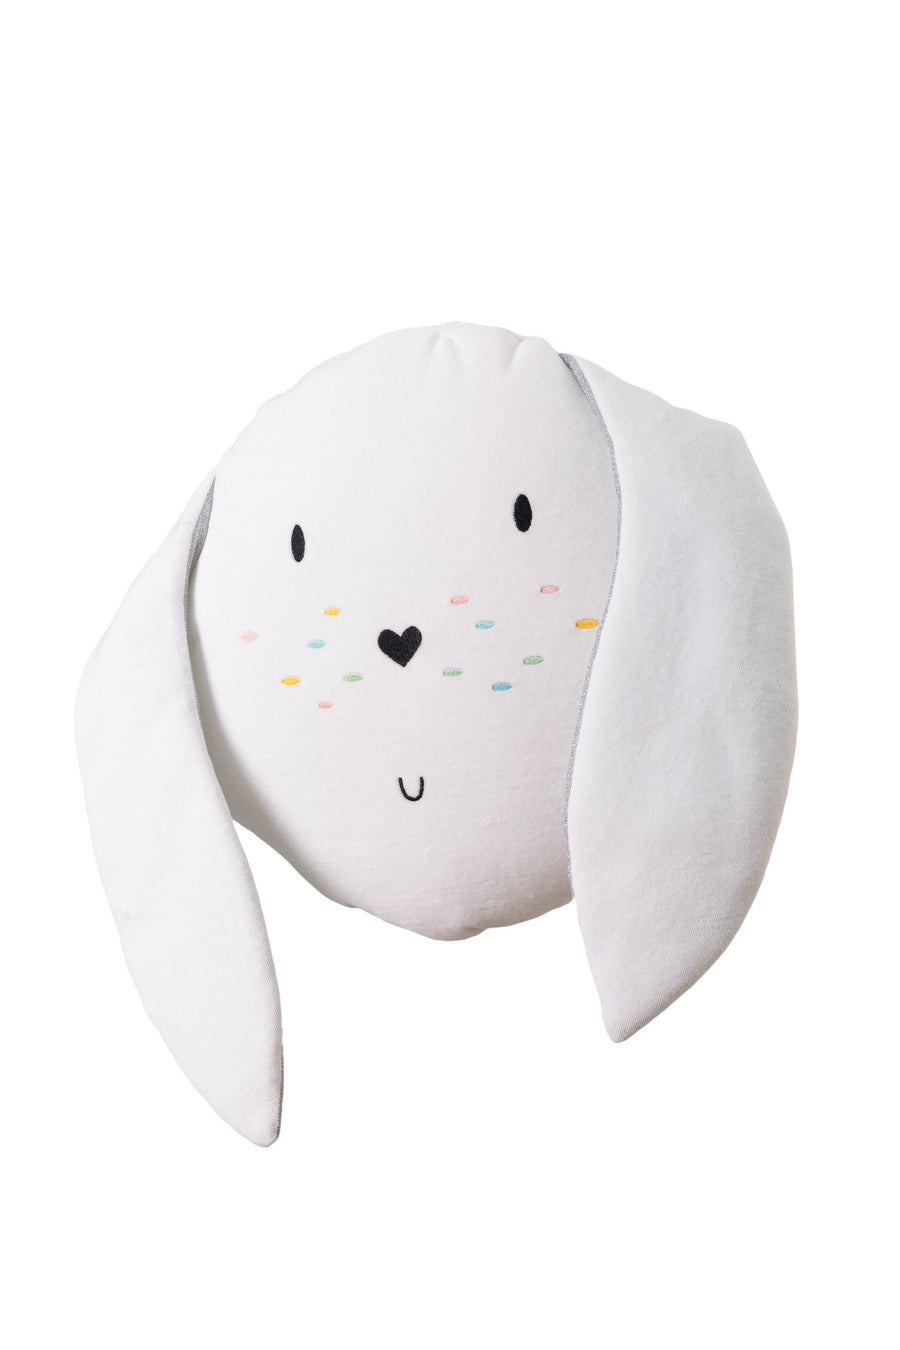 Bunny cushion in White